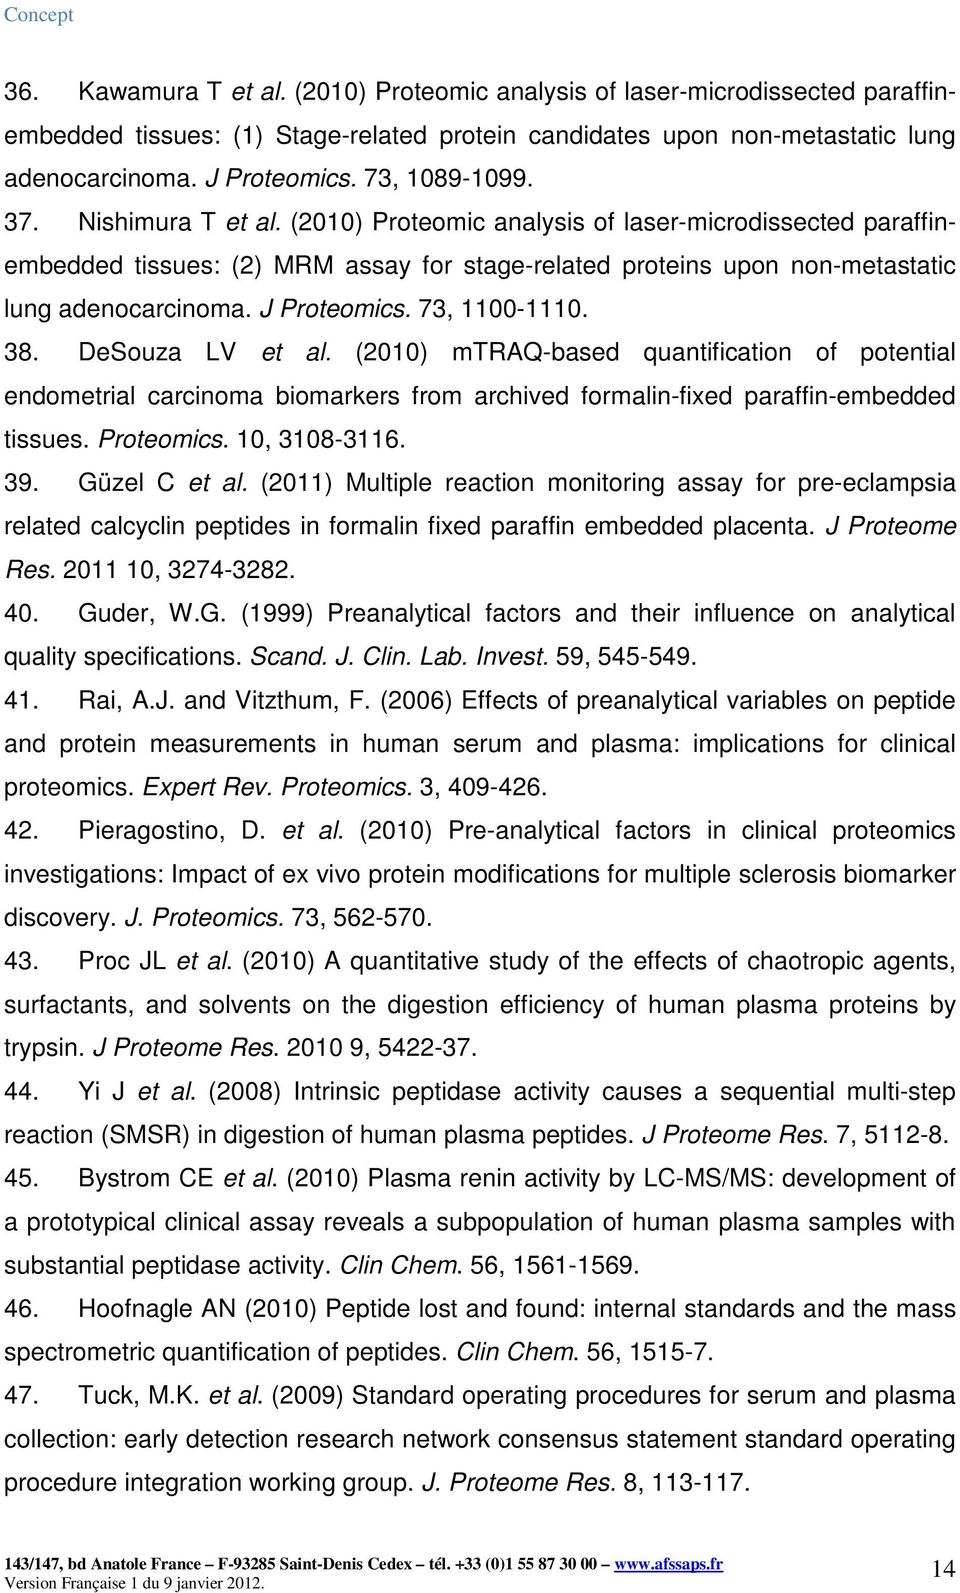 J Proteomics. 73, 1100-1110. 38. DeSouza LV et al. (2010) mtraq-based quantification of potential endometrial carcinoma biomarkers from archived formalin-fixed paraffin-embedded tissues. Proteomics. 10, 3108-3116.